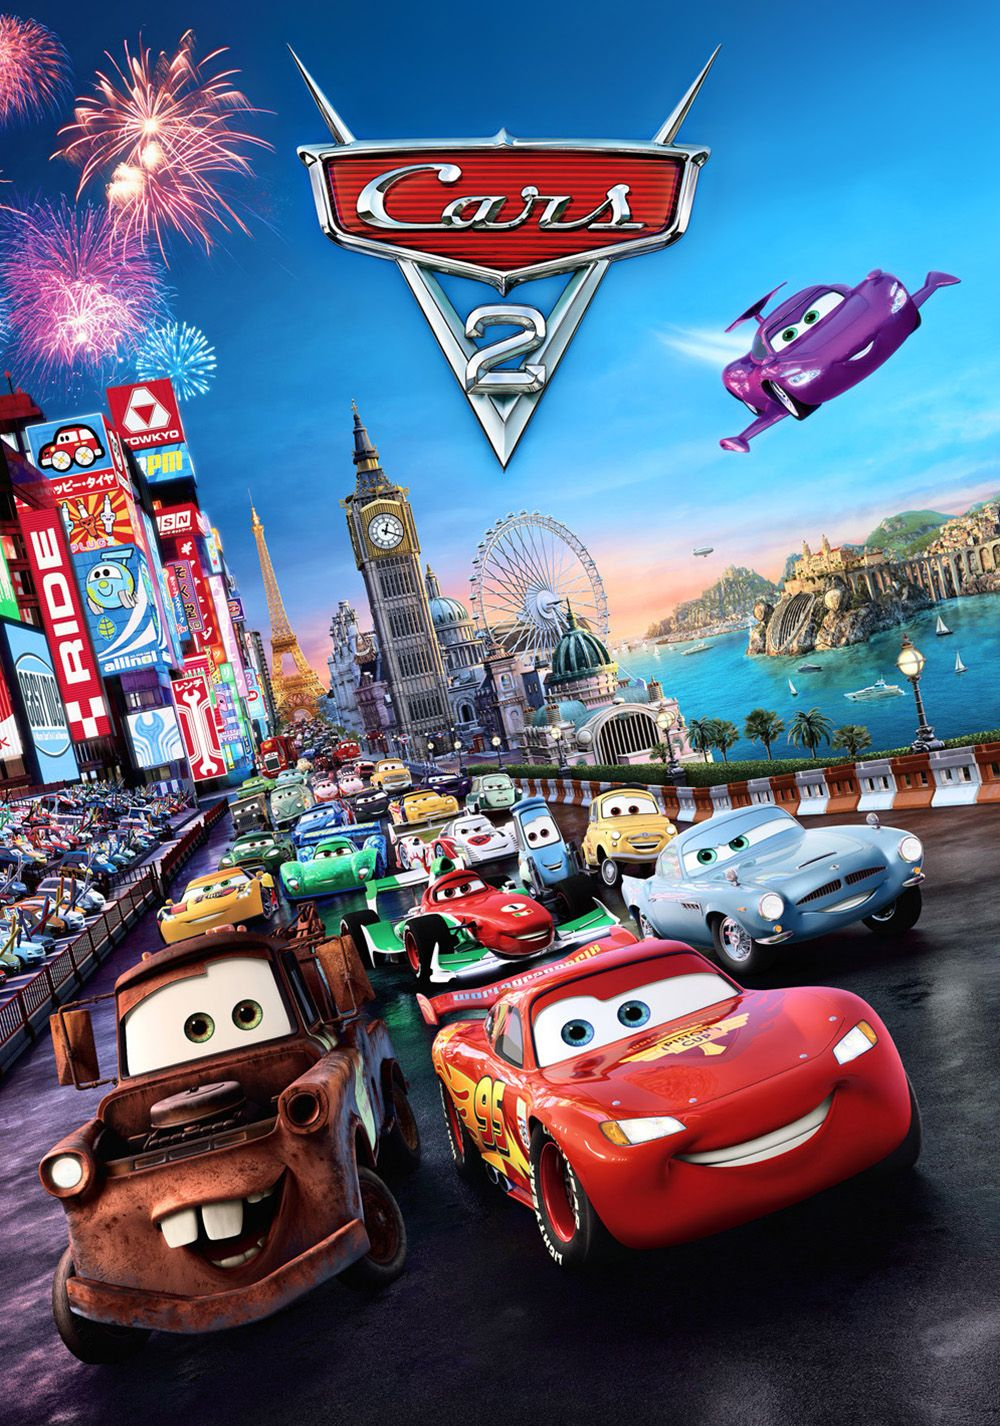 Cars 2 (2011) Going where no car has gone before